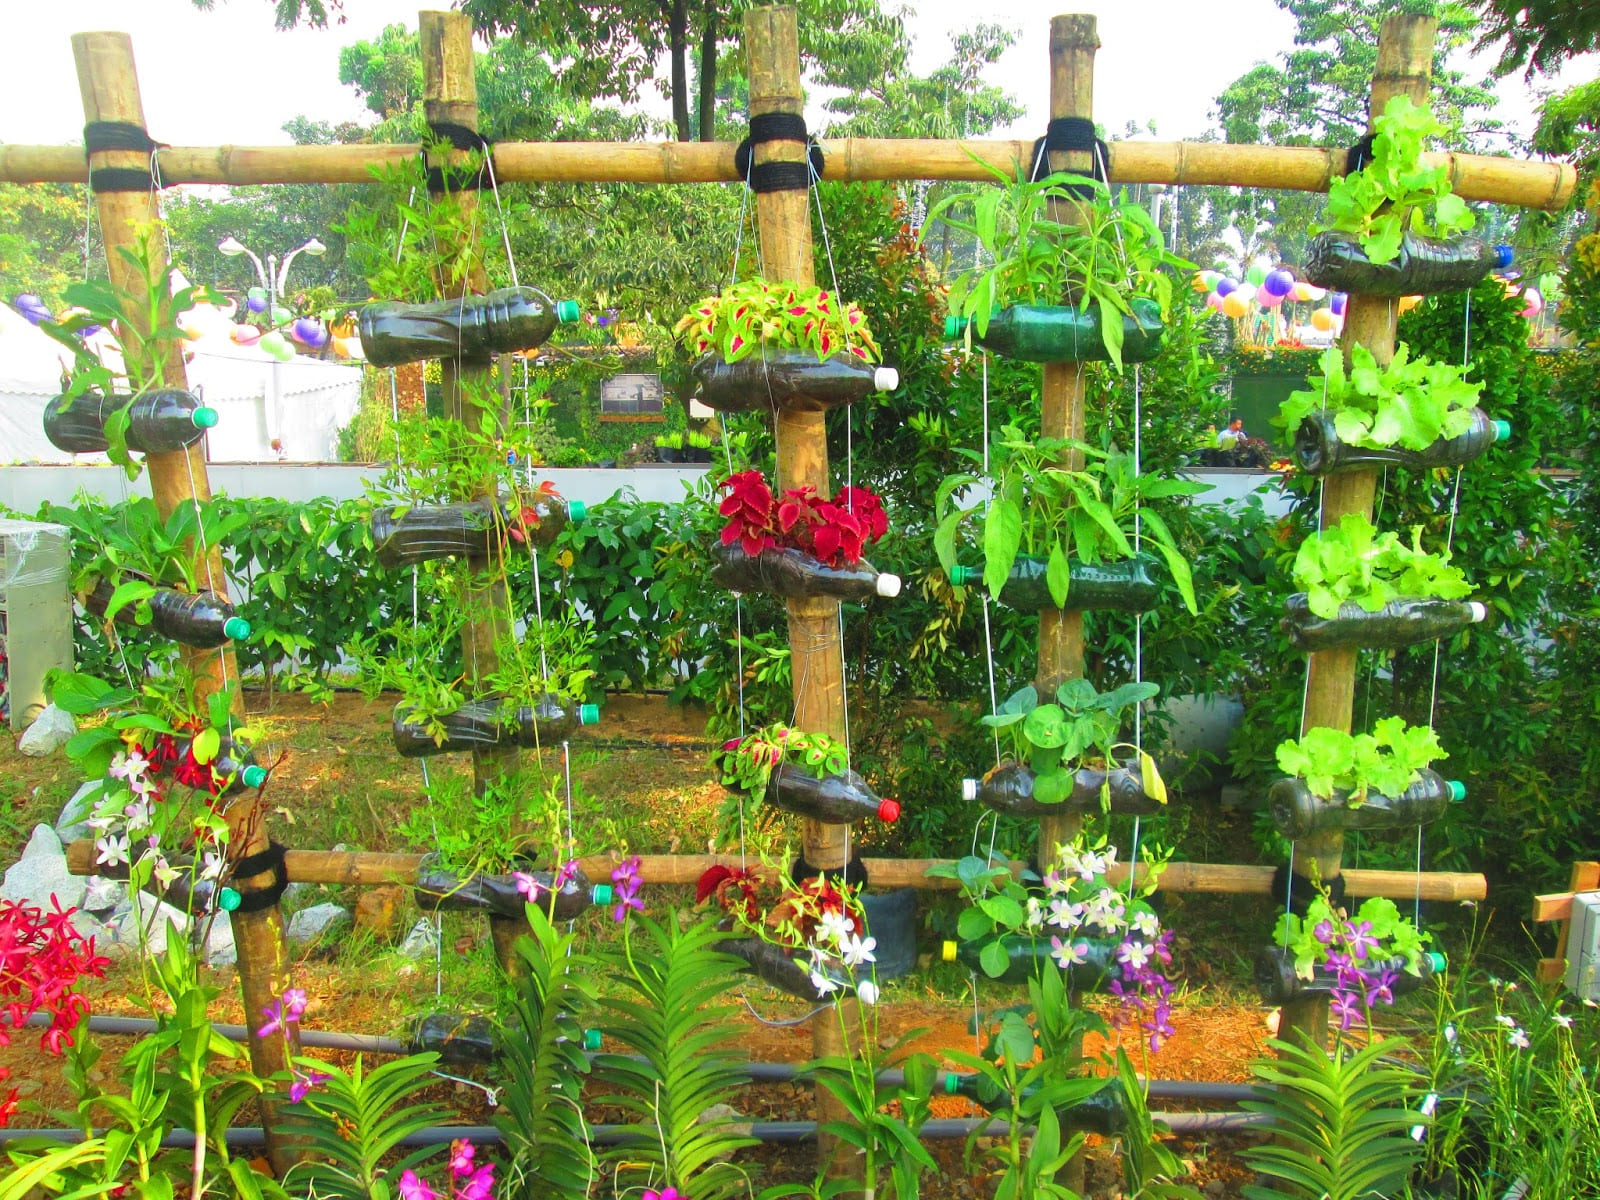 Simphome.com 20 innovative ways to reuse old plastic bottles for recycle ideas for garden